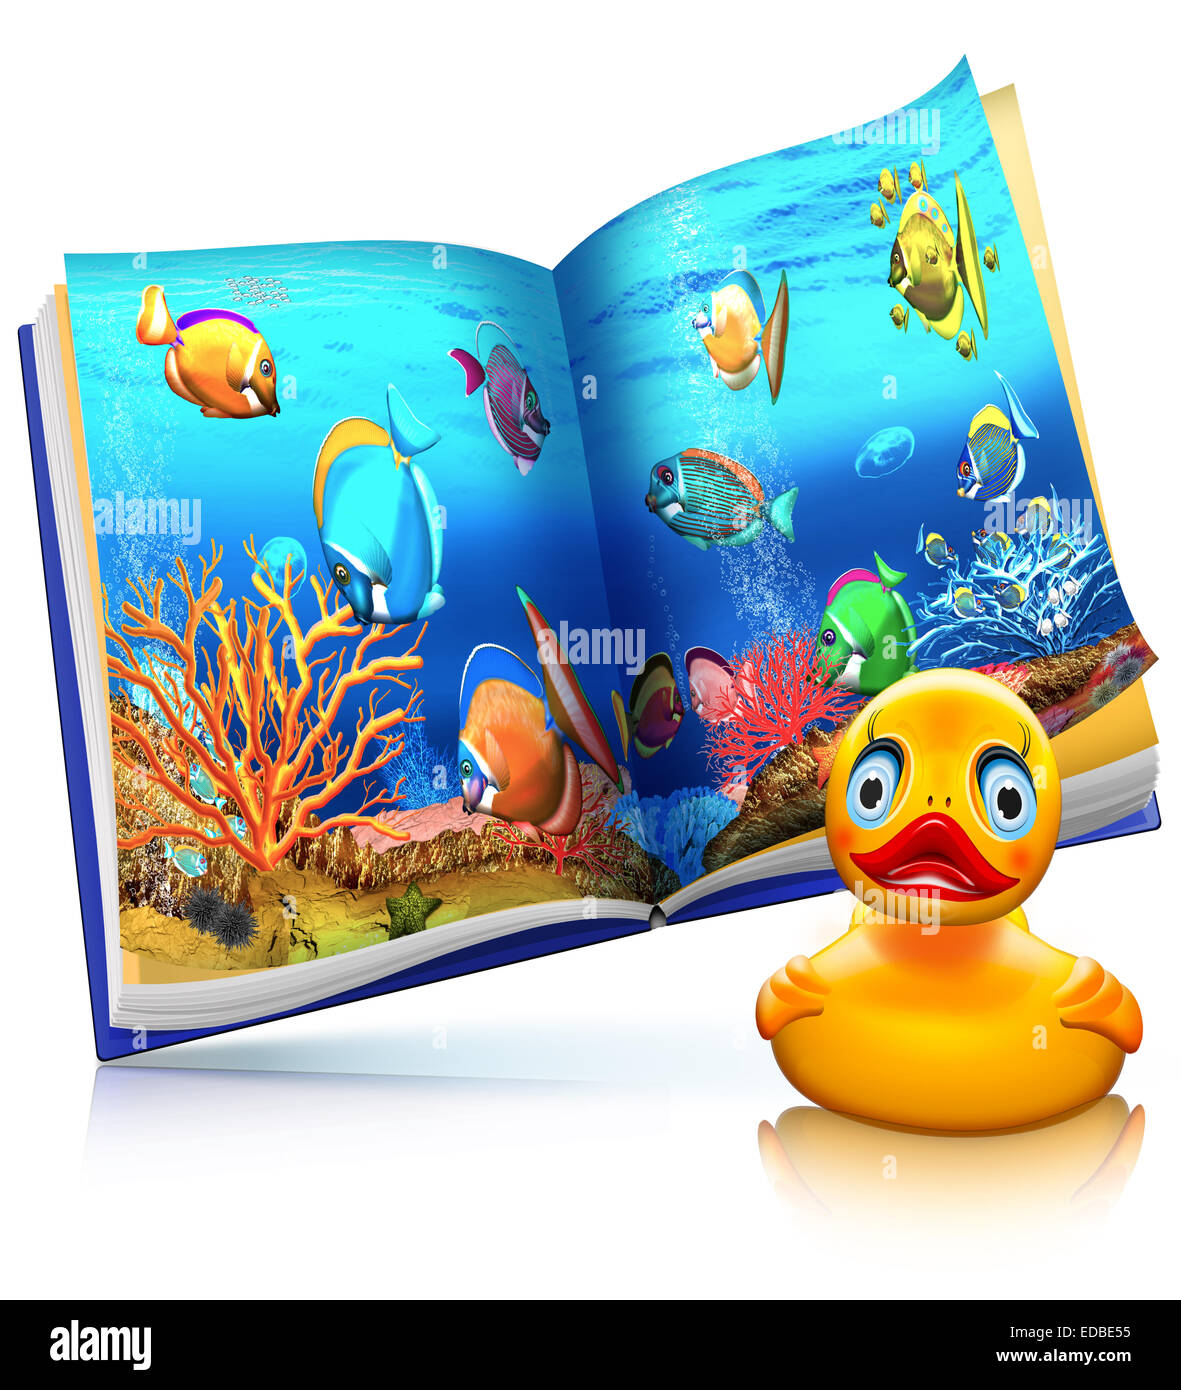 Coral reef, coral fish, children's book with a rubber duck, illustration - Stock Image